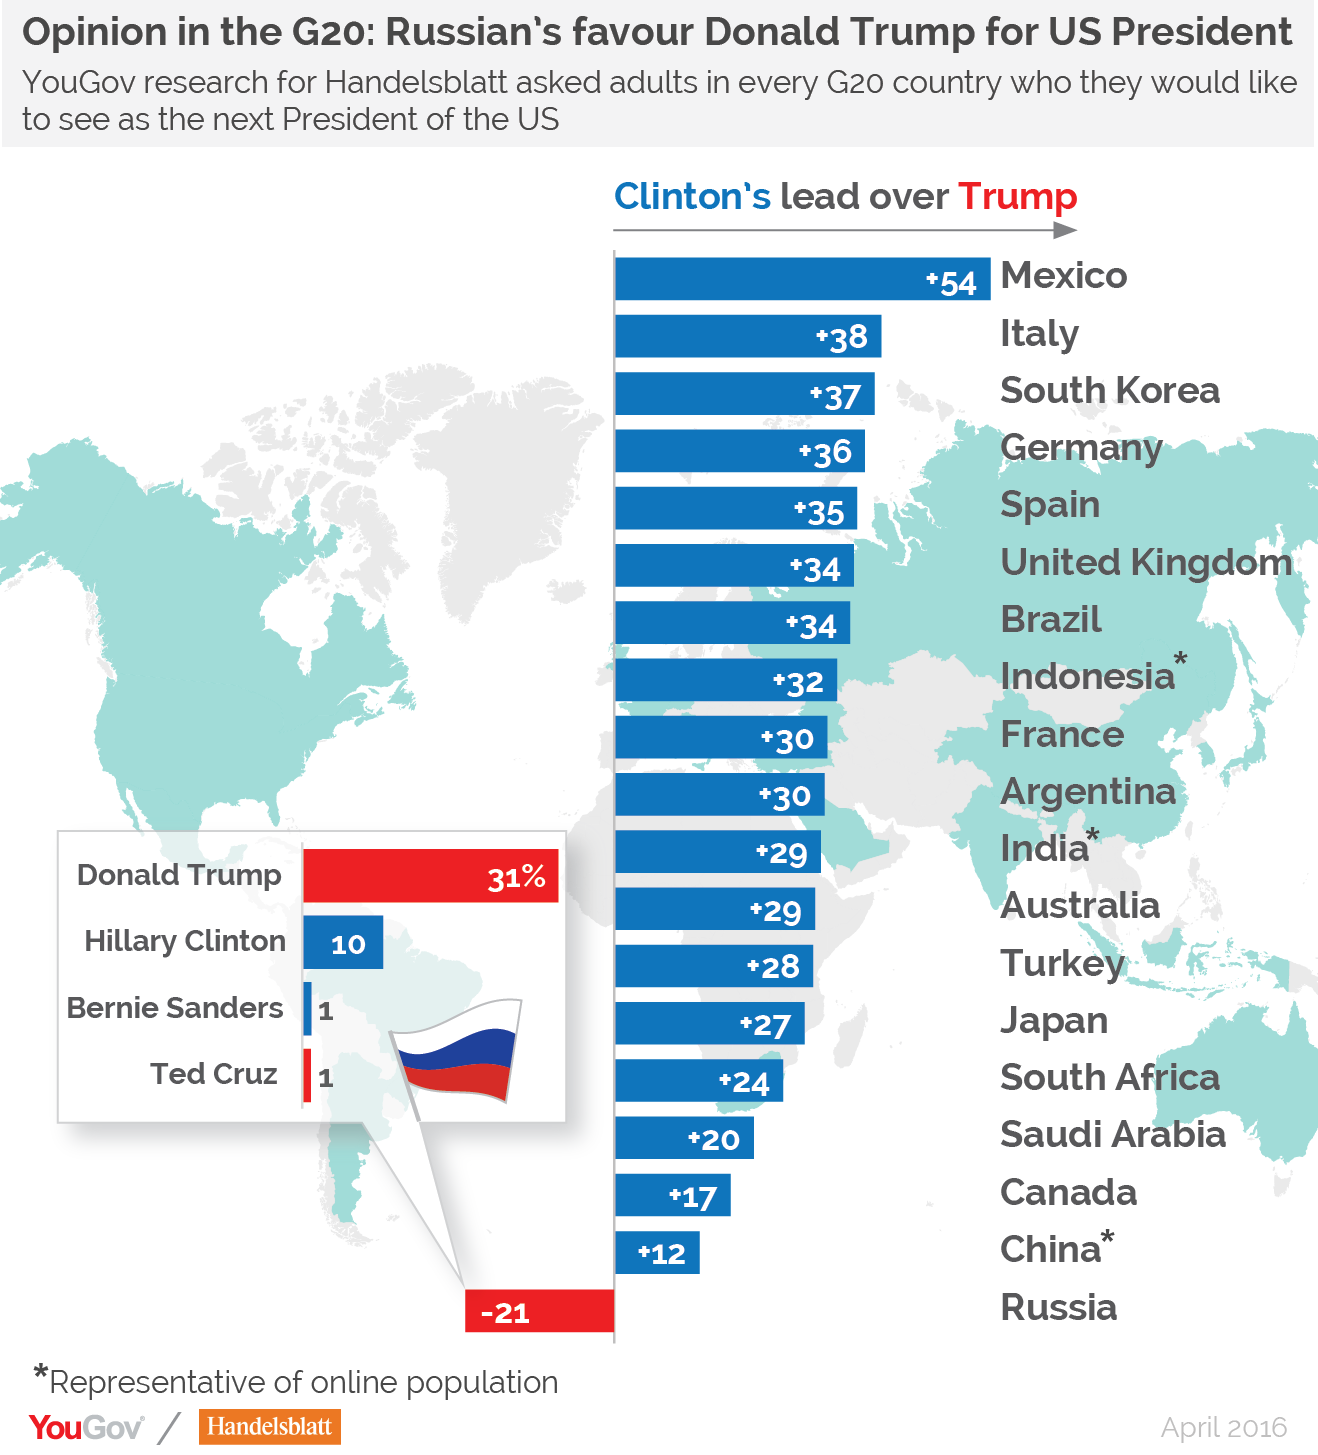 Yougov Research For Handelsblatt Global Edition Across The G20 Group Of Nations Reveals That Donald Trump Is The Preferred Choice For Us President In Only